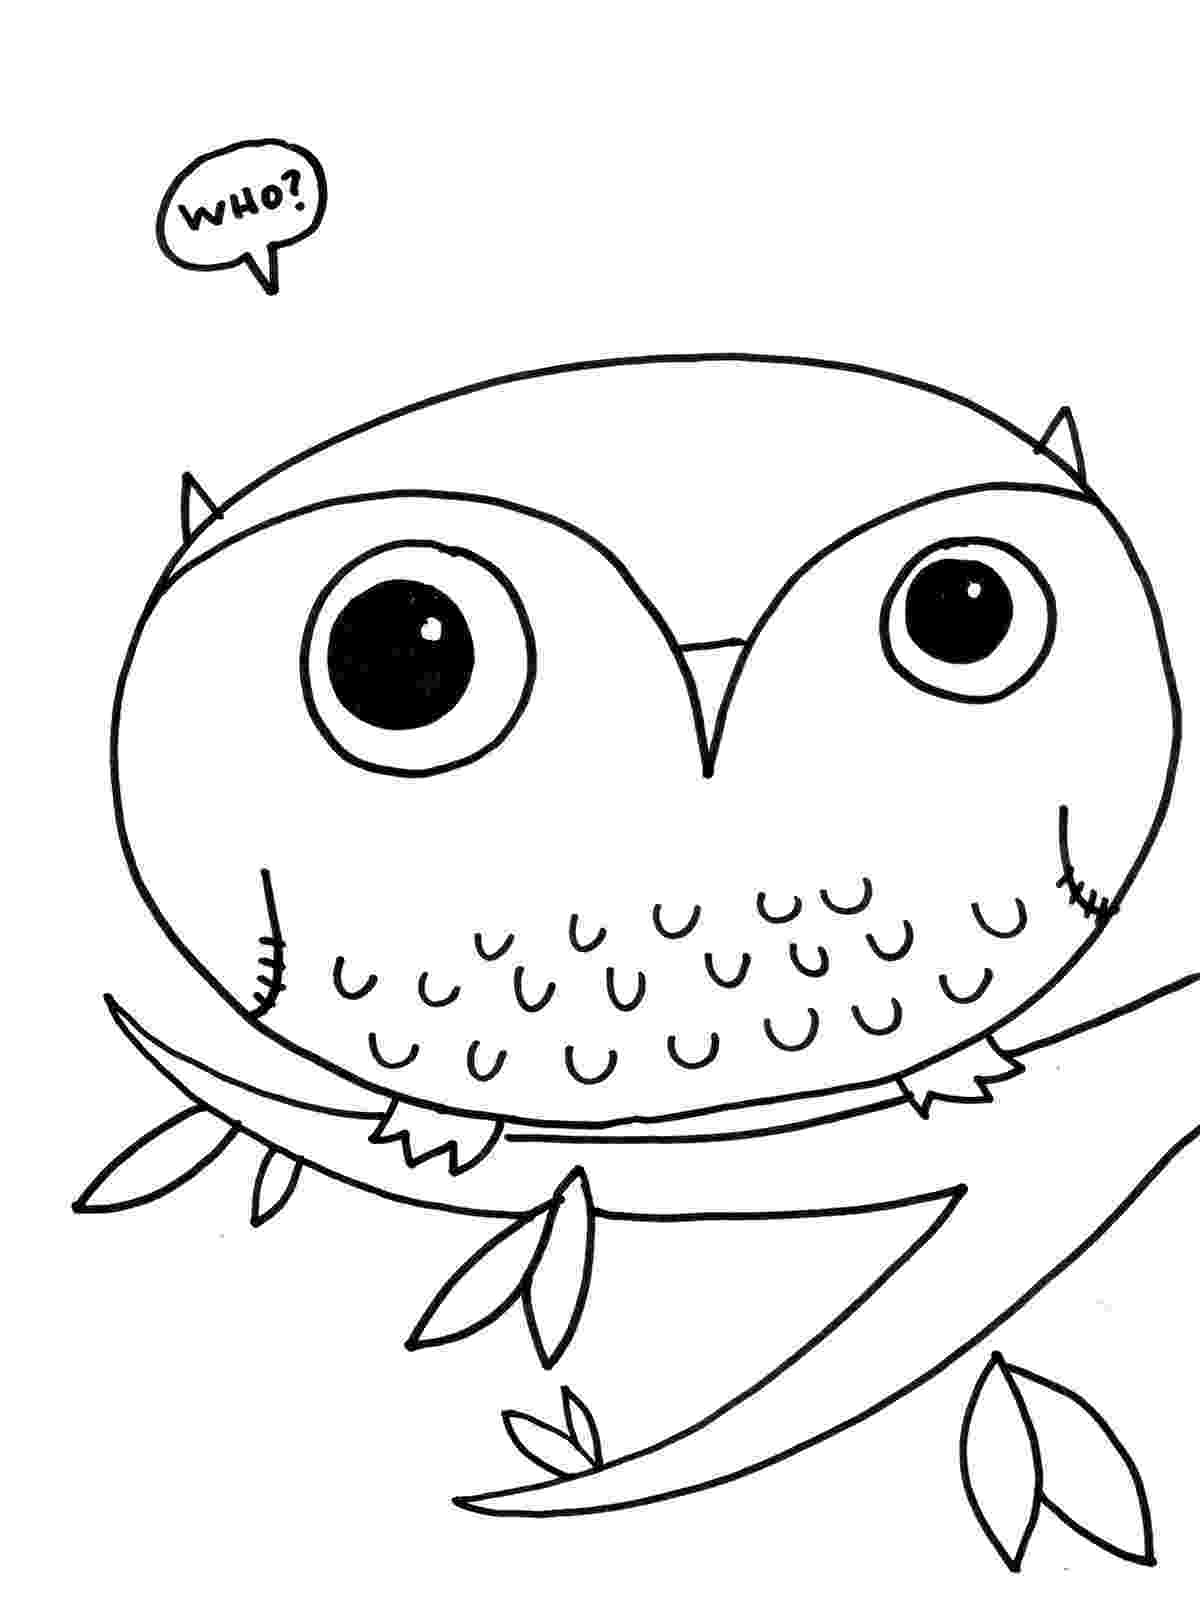 cute owl printable coloring pages colouring pages owl themed updated 2011 paper crafts owl cute coloring printable pages